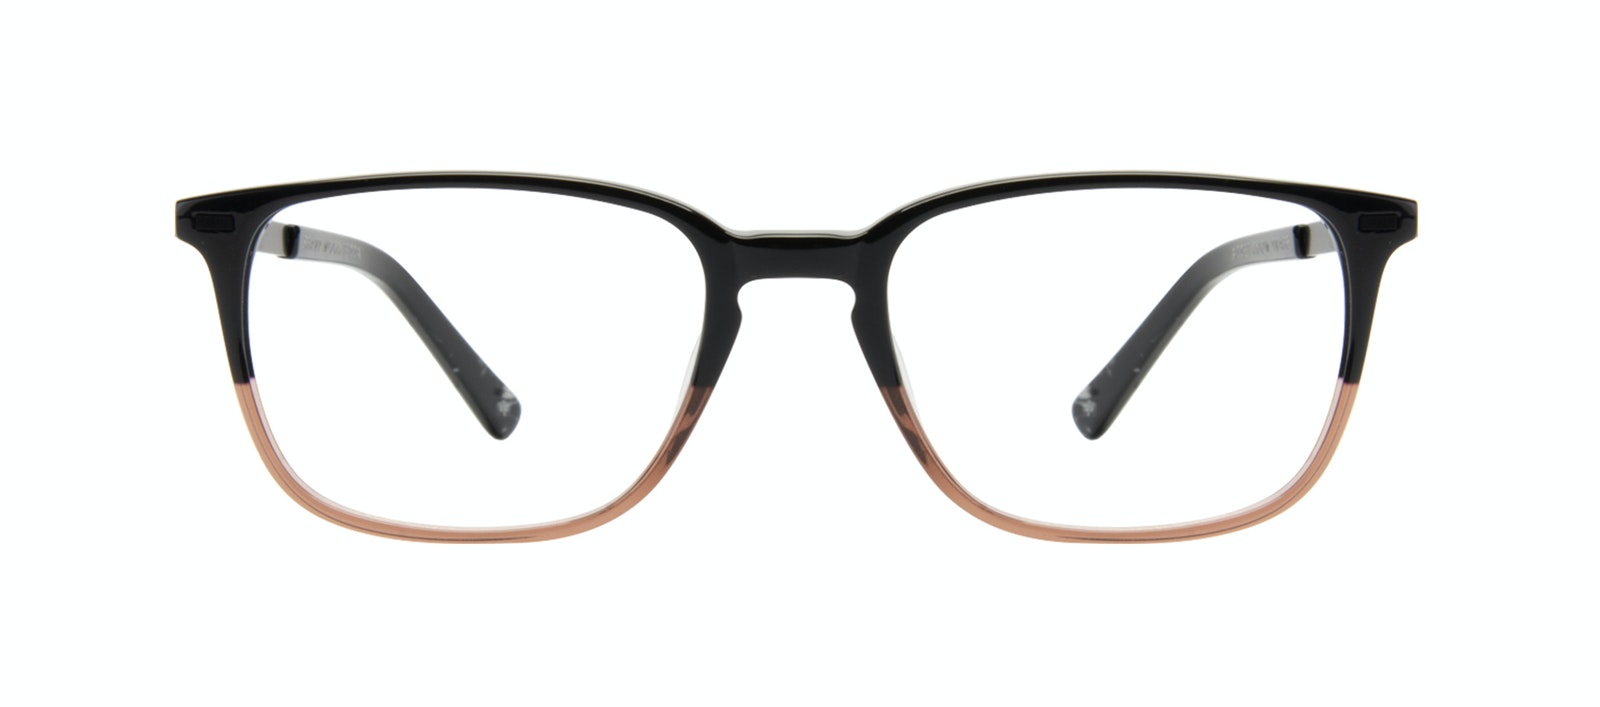 Affordable Fashion Glasses Rectangle Eyeglasses Men Sharp L Wood Terra Front